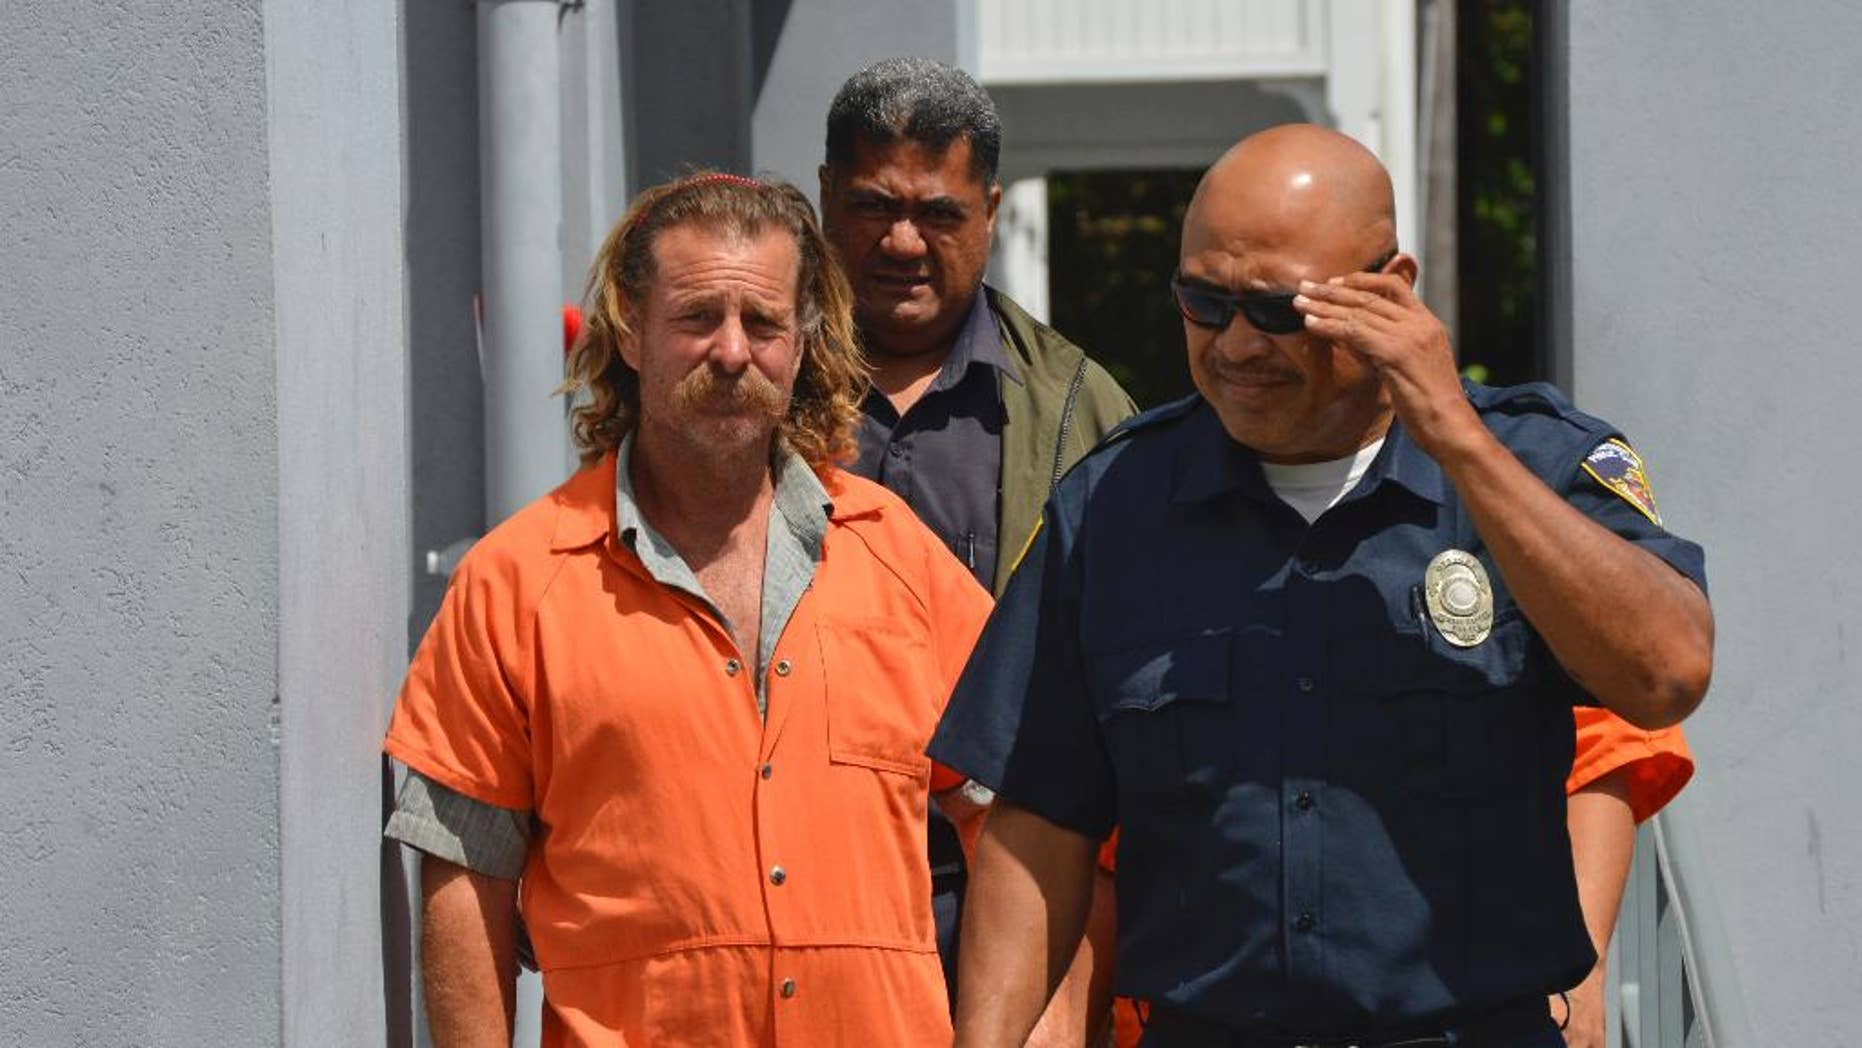 In this Oct. 4, 2016 photo provided by the Samoa News, Dean Fletcher, left, is escorted by a police officer after his initial appearance in the District Court of American Samoa in Pago Pago, American Samoa.